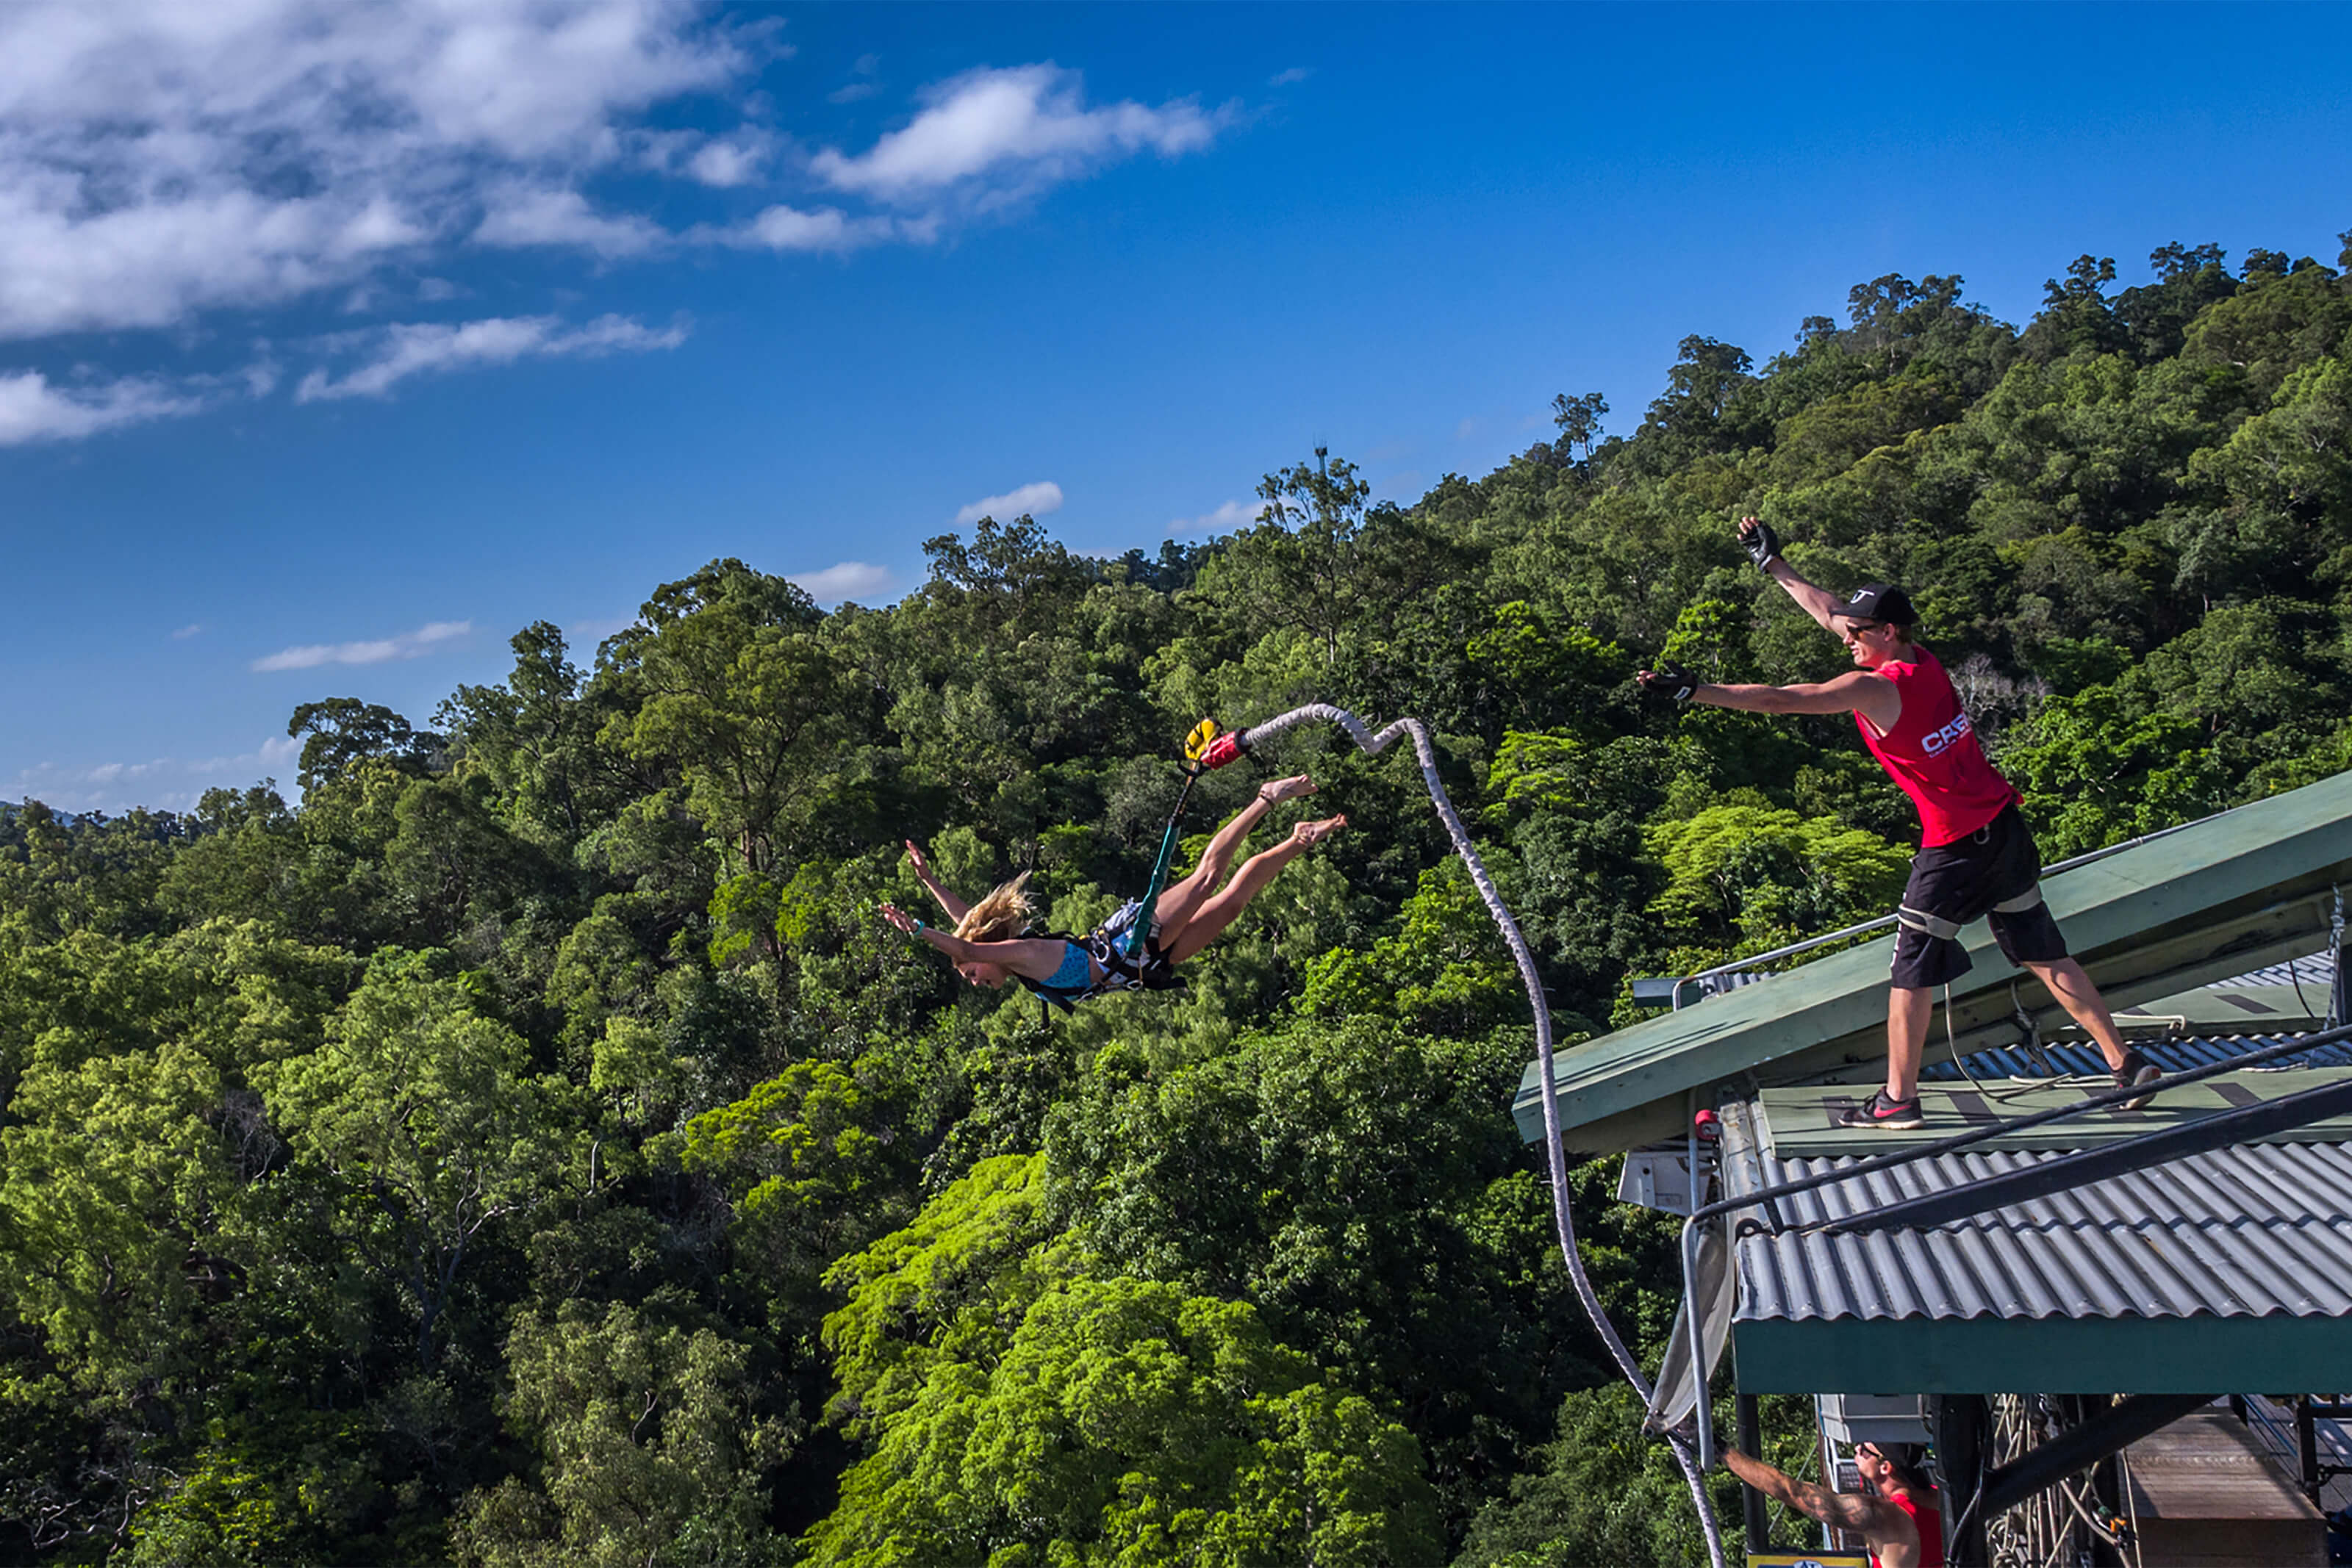 girl bungy jumping